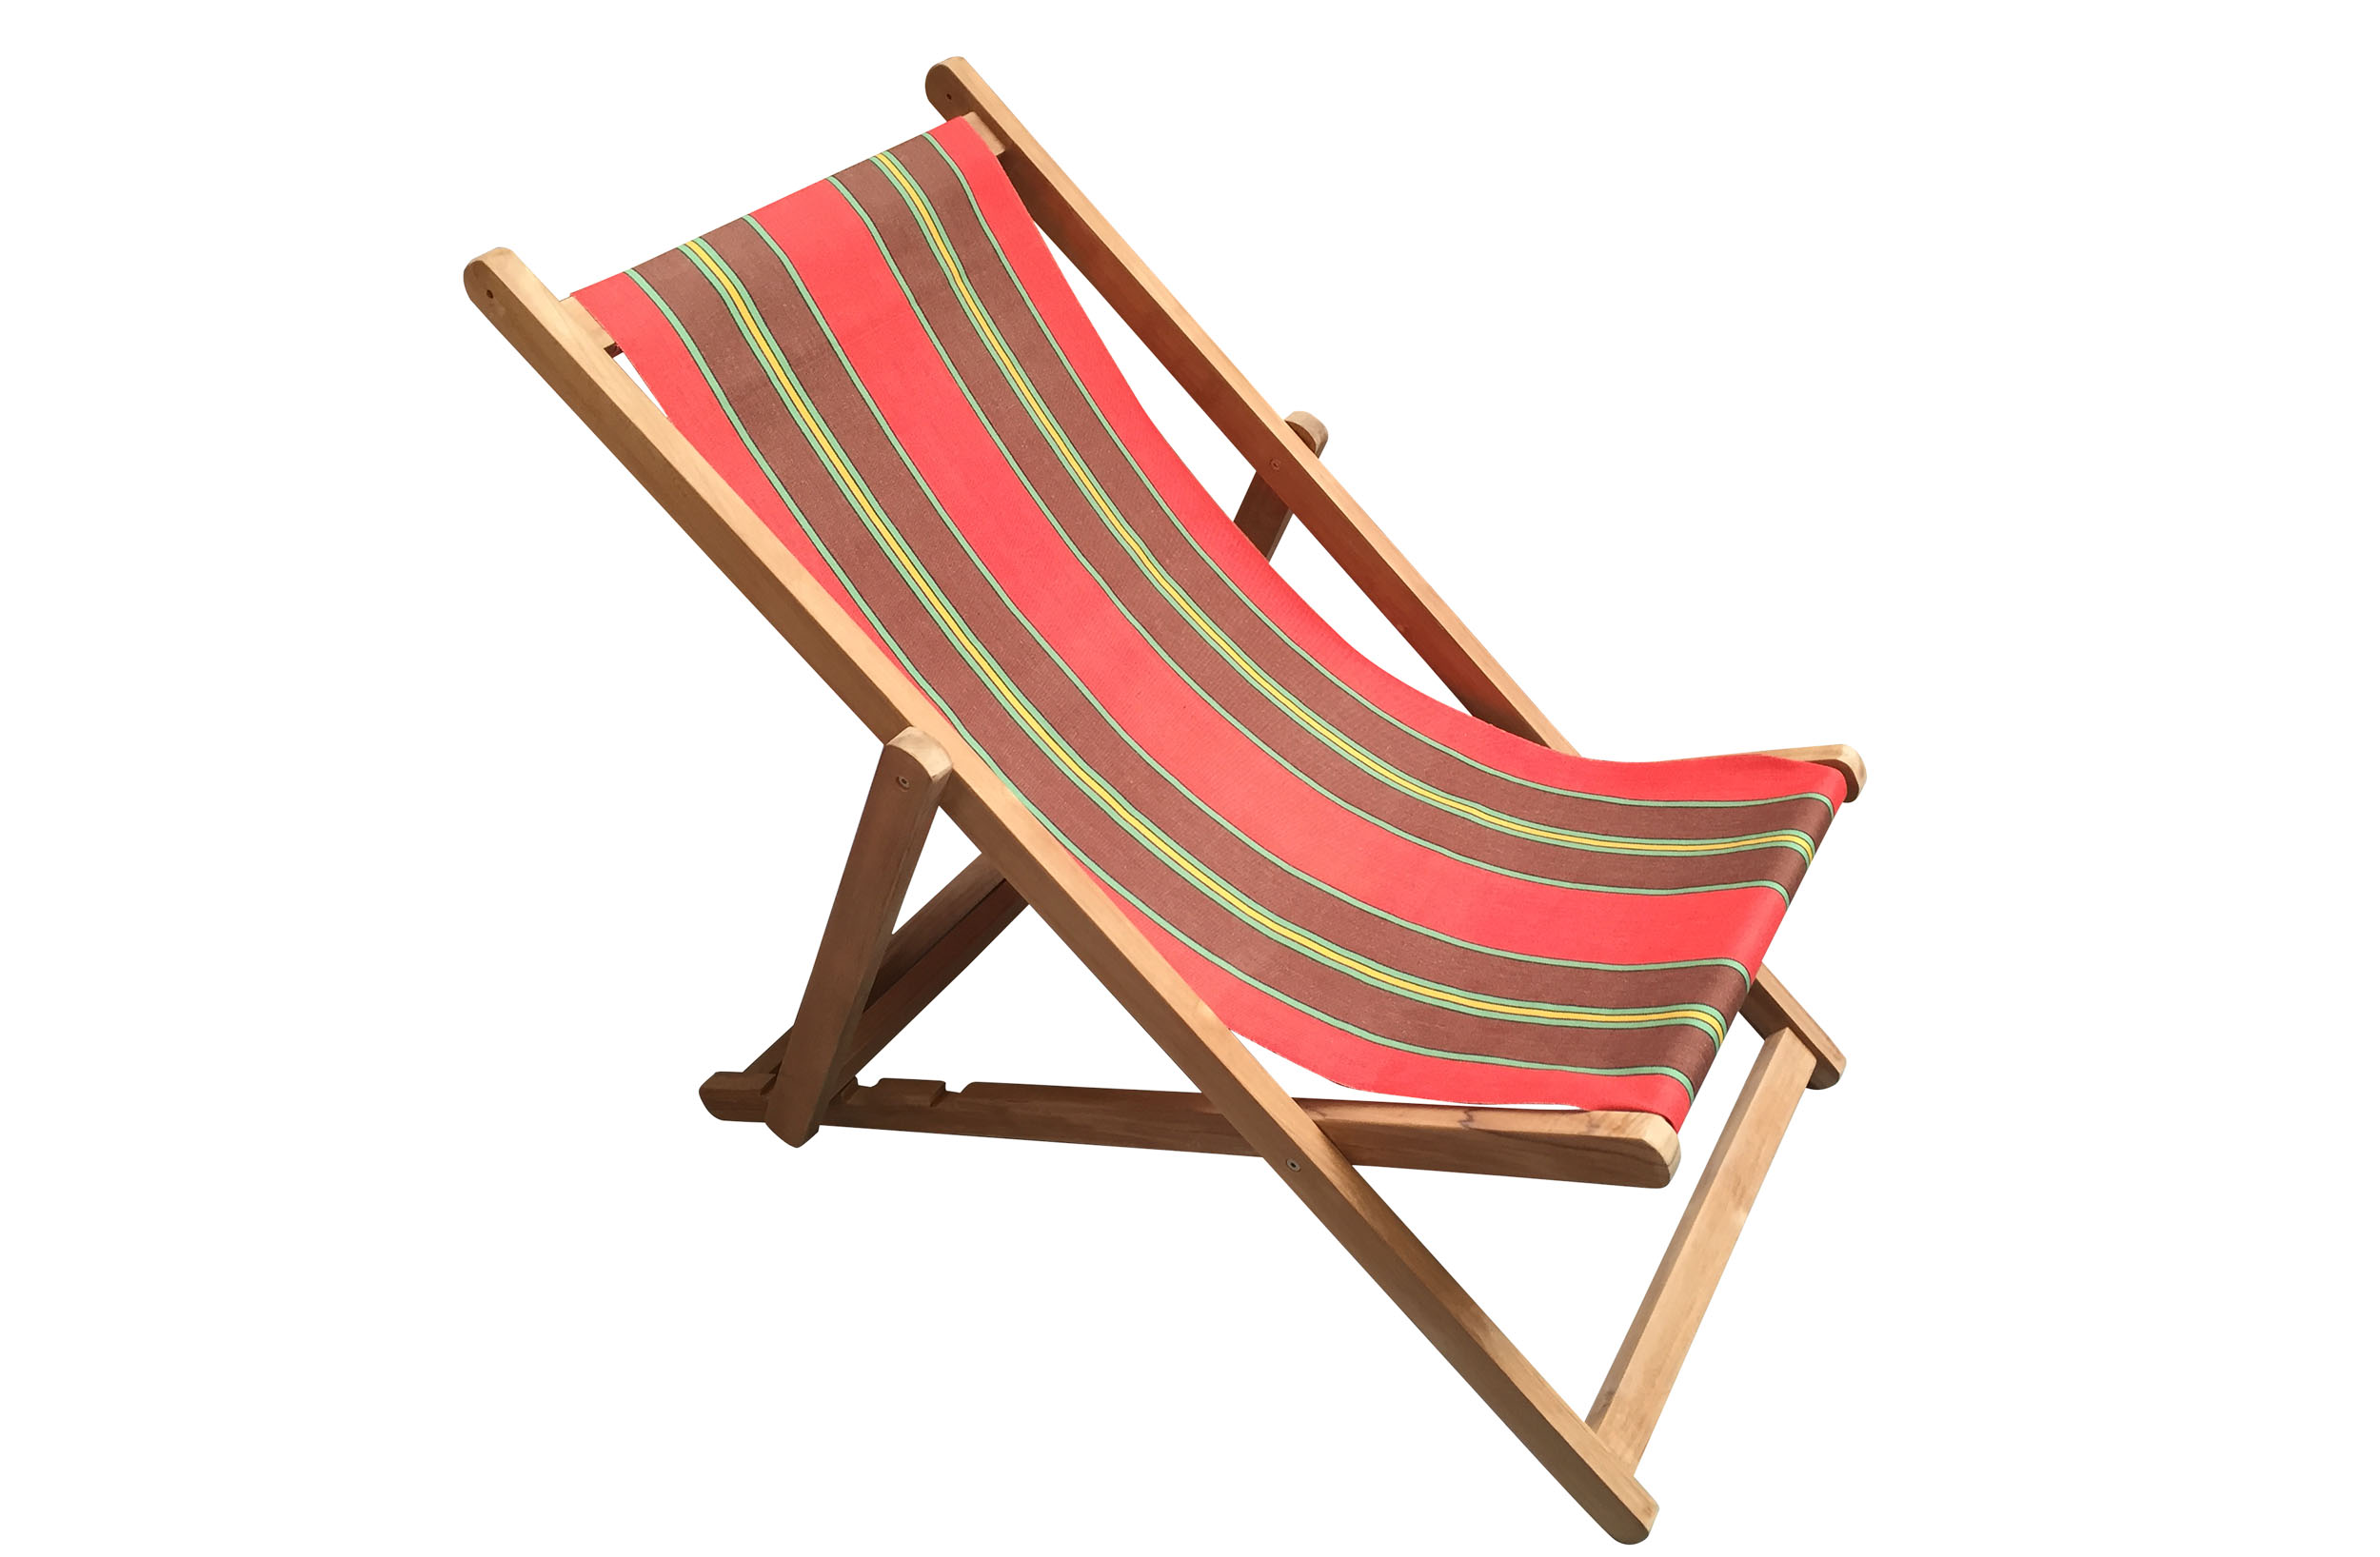 Red Deckchairs | Folding Wooden Deck Chairs Triathlon Red Stripes